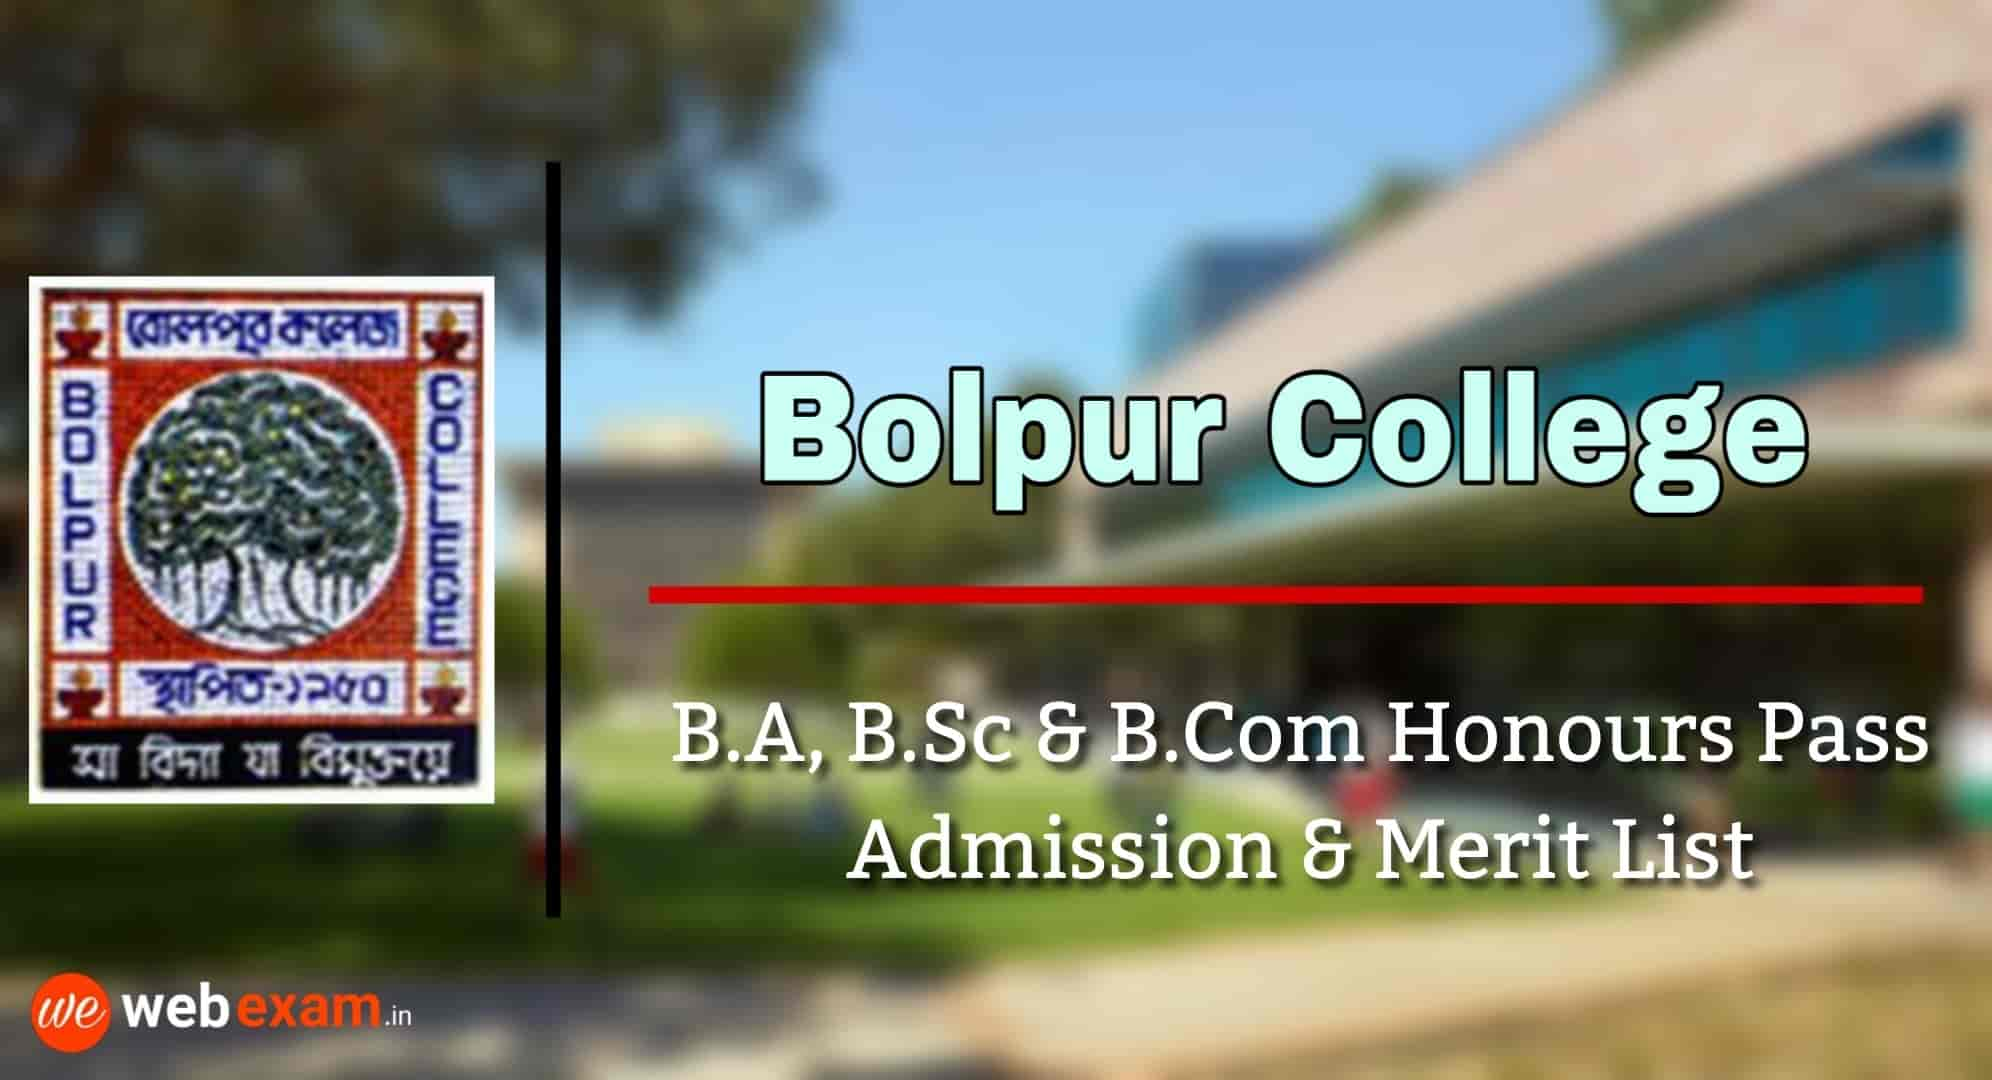 Bolpur College Admission